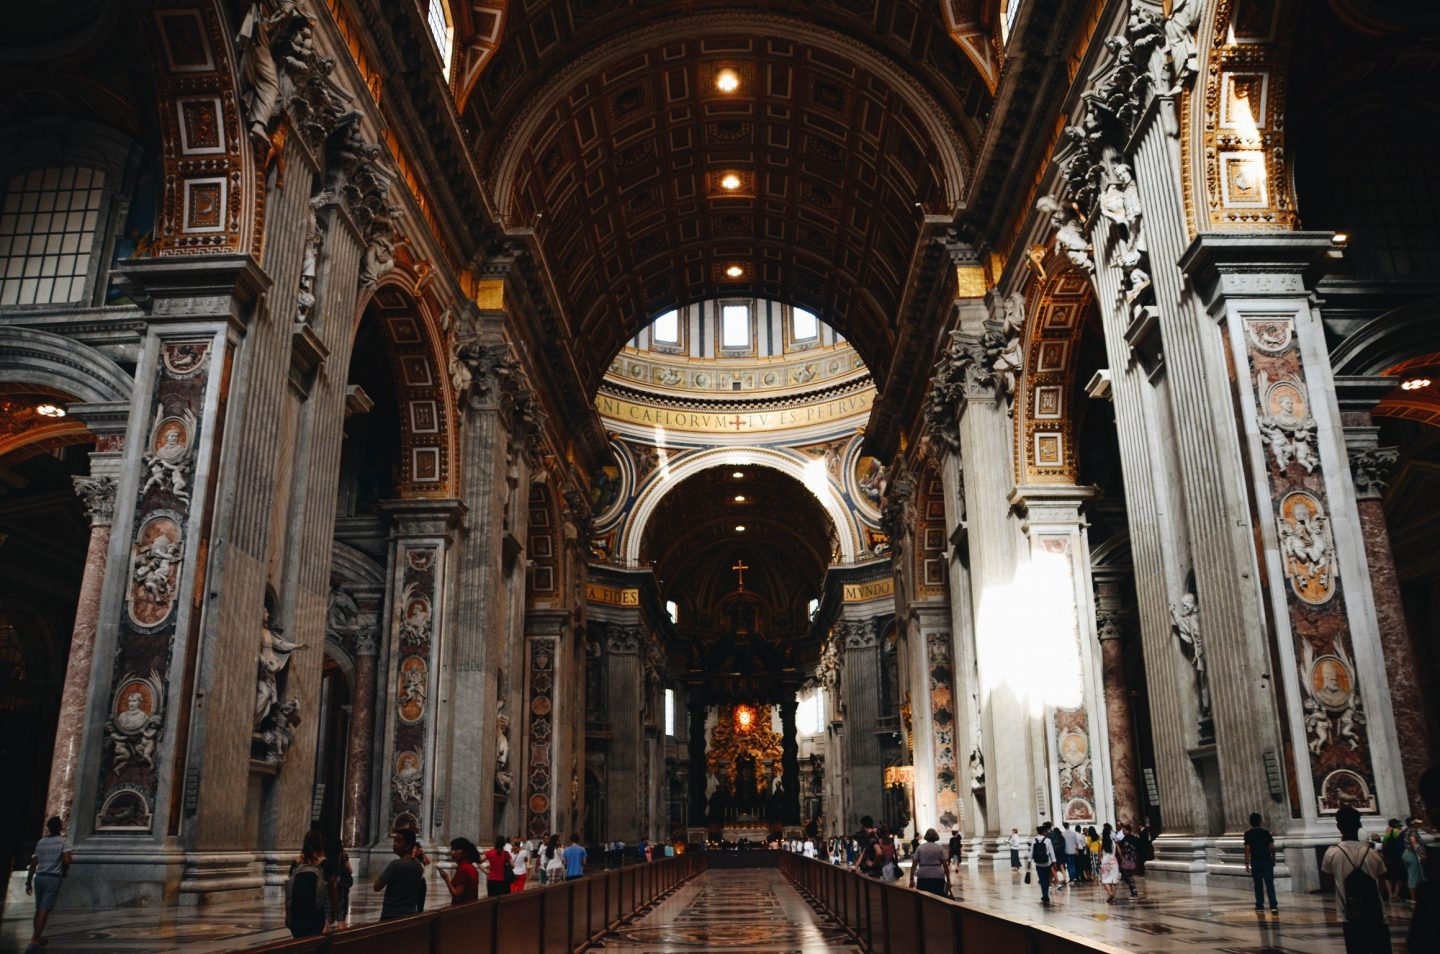 Photo from the inside of Vatican in Rome